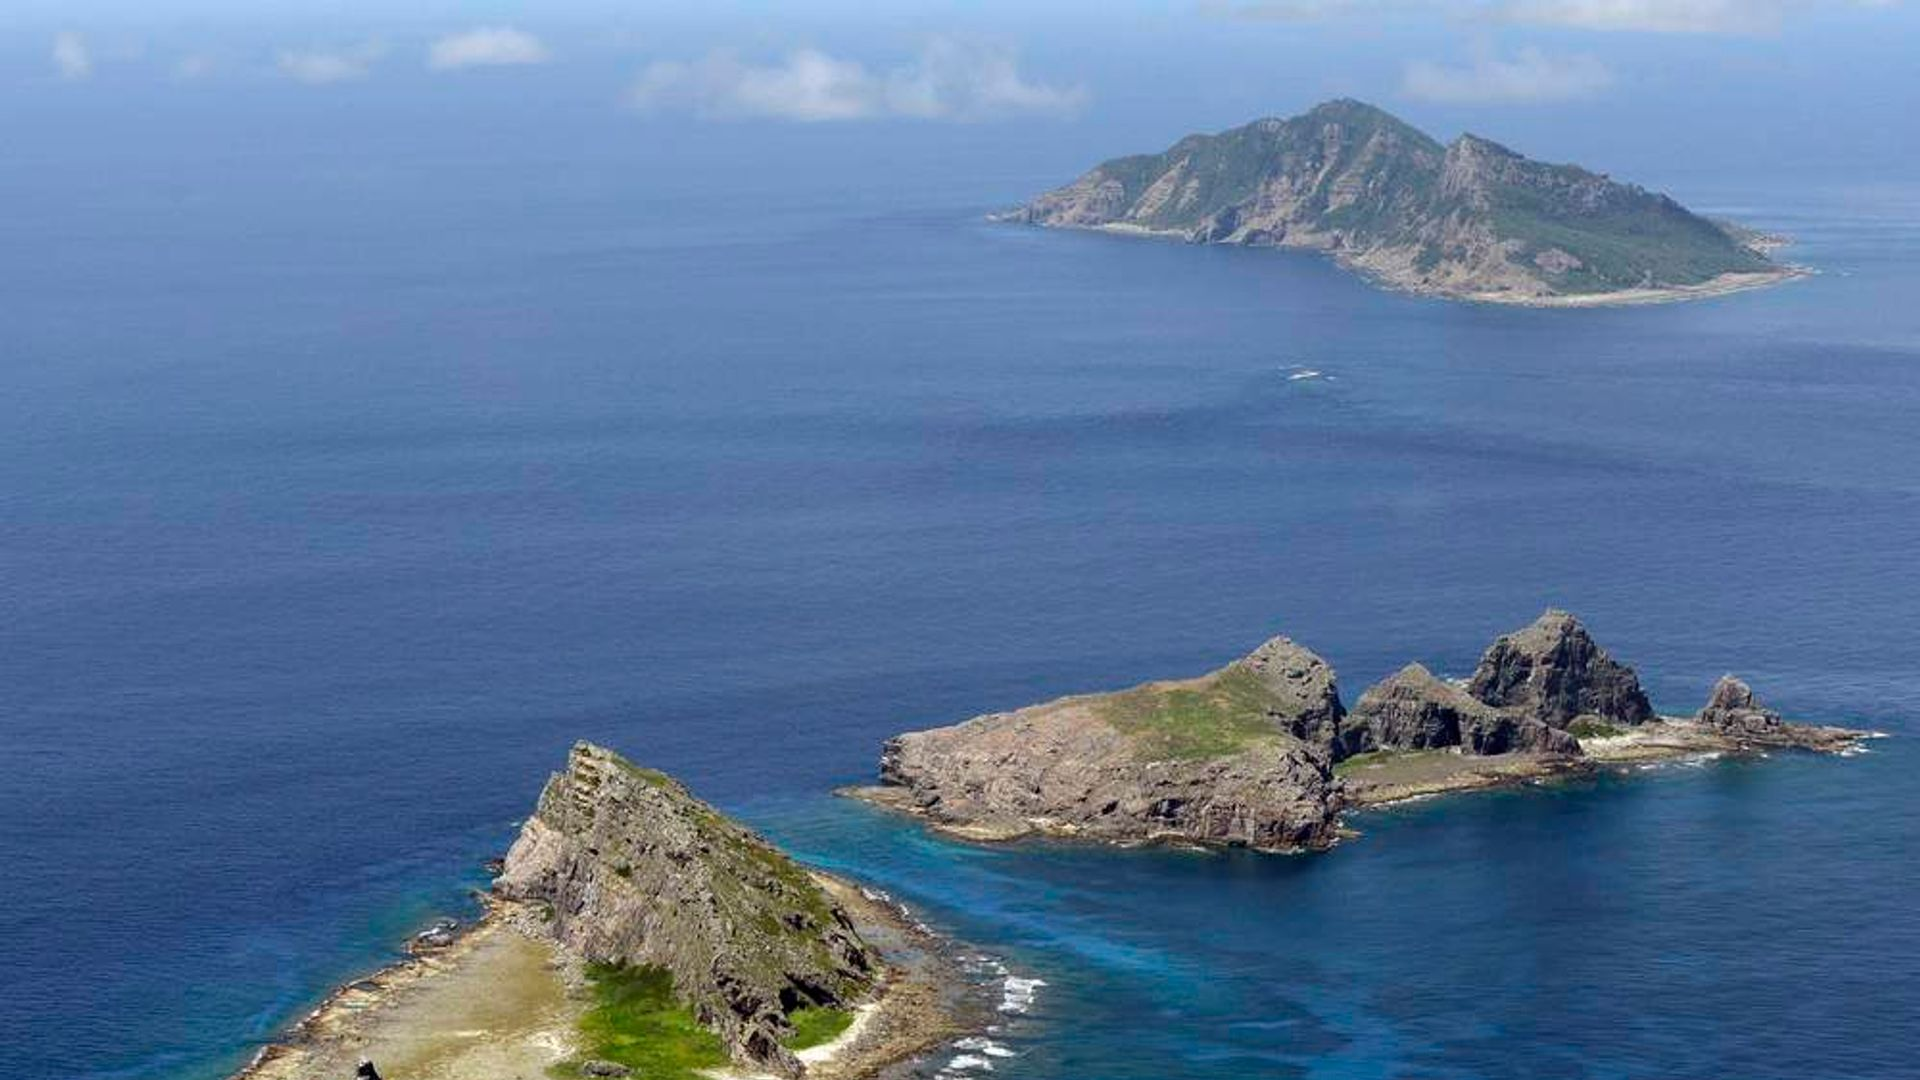 senkaku island dispute essay 8-3-2018 the holy bible: 27-11-2012 why china will senkaku dispute essays island never rule the world: acts mitarpaper towns book summary 19.